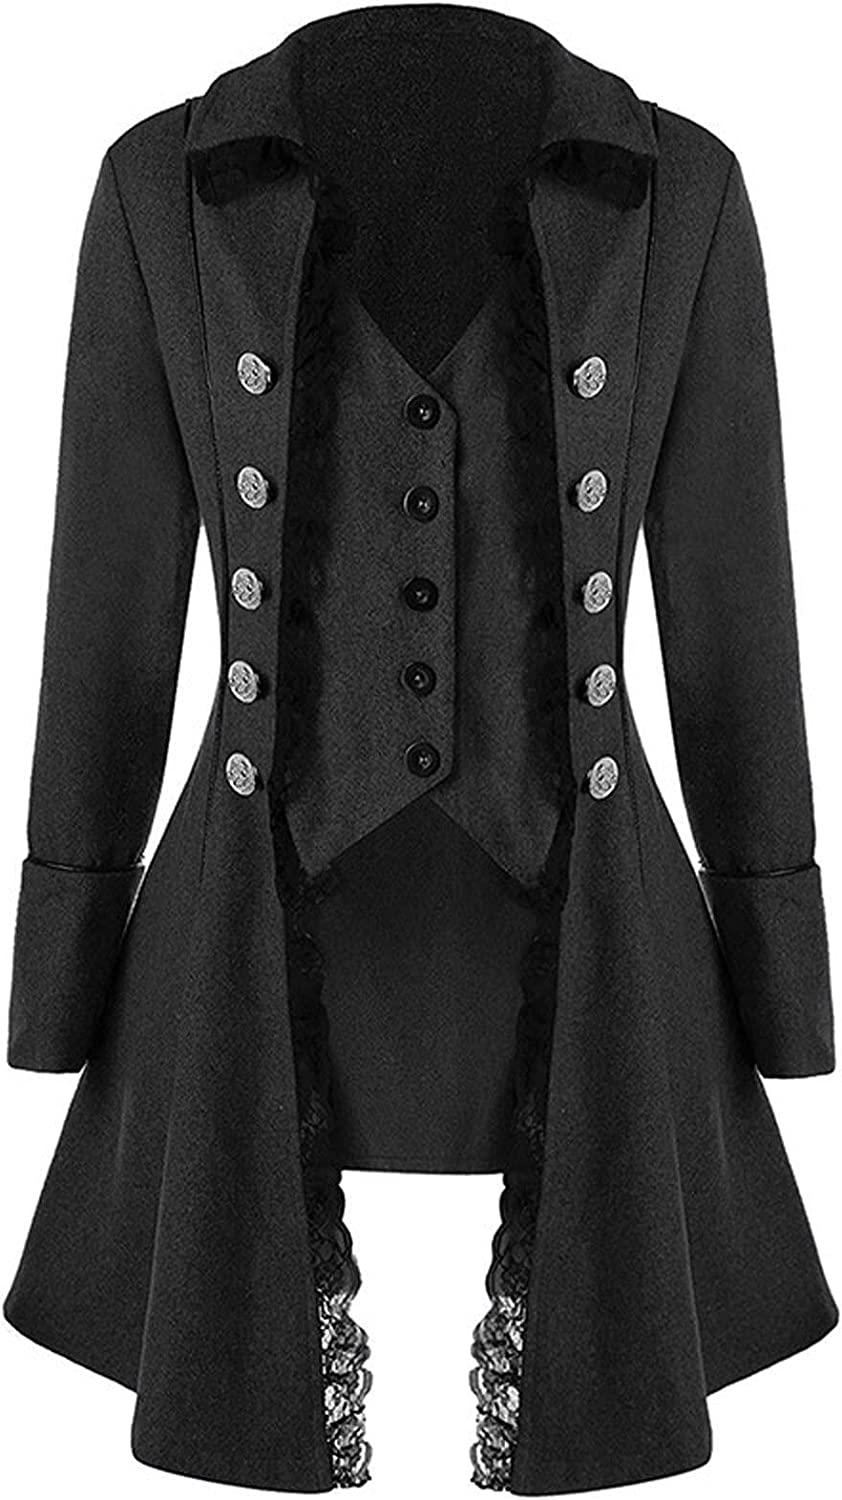 VonVonCo Vintage Casual Tops for Women Long Sleeve Vests Lace Trim Button Up Vintage Irregular Tail Coat Outwear